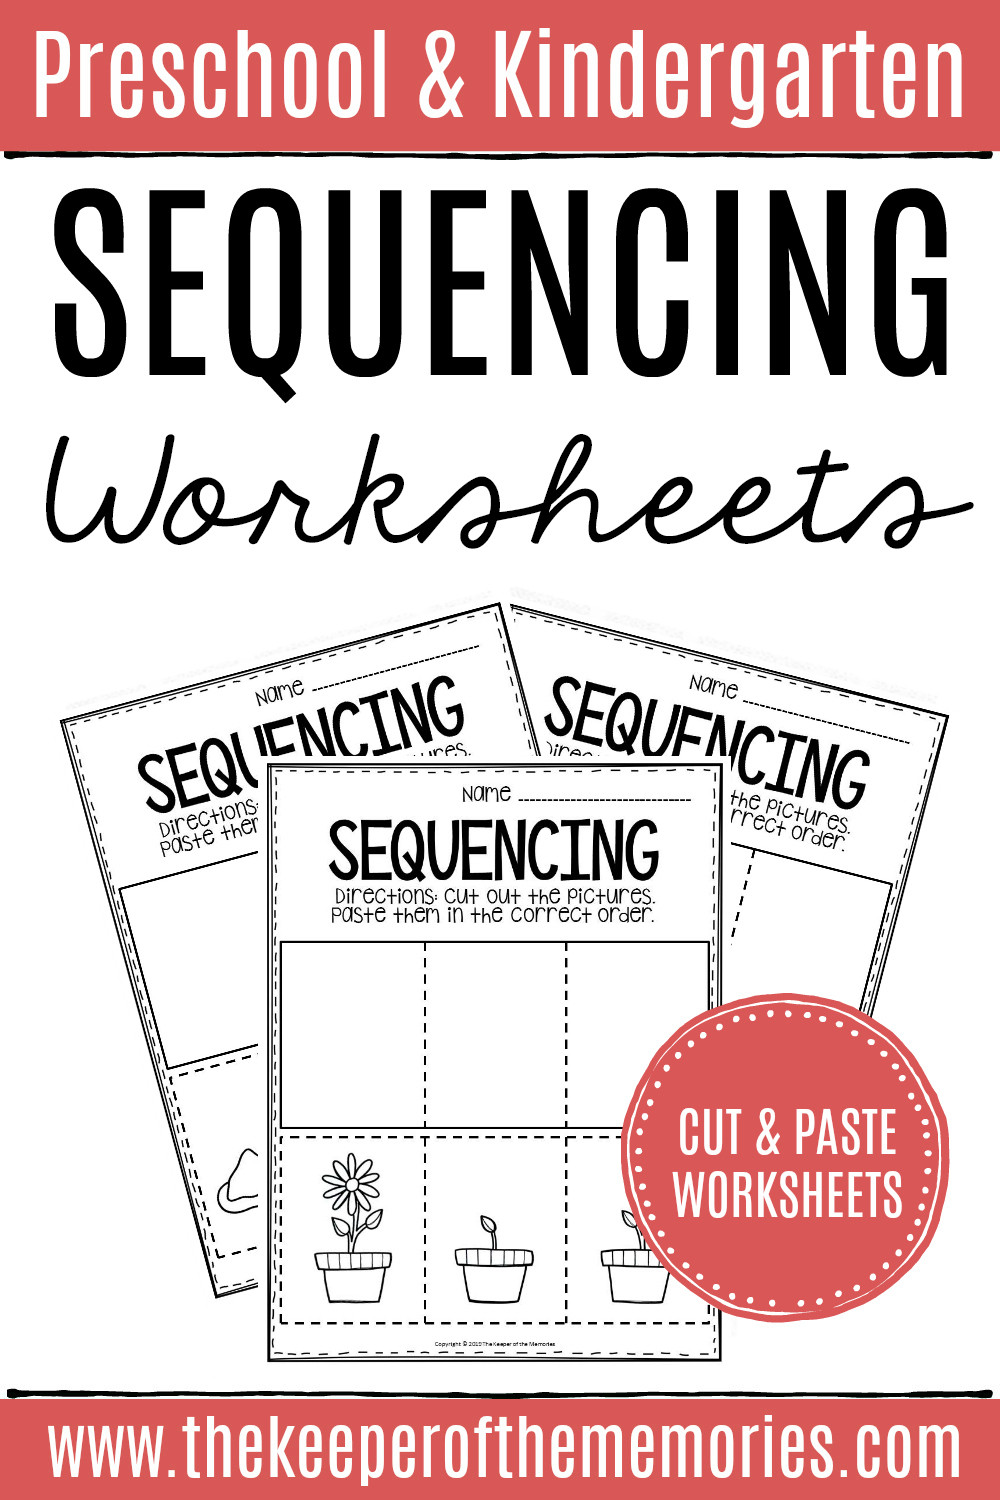 Kindergarten Sequencing Worksheet 3 Step Sequencing Worksheets the Keeper Of the Memories